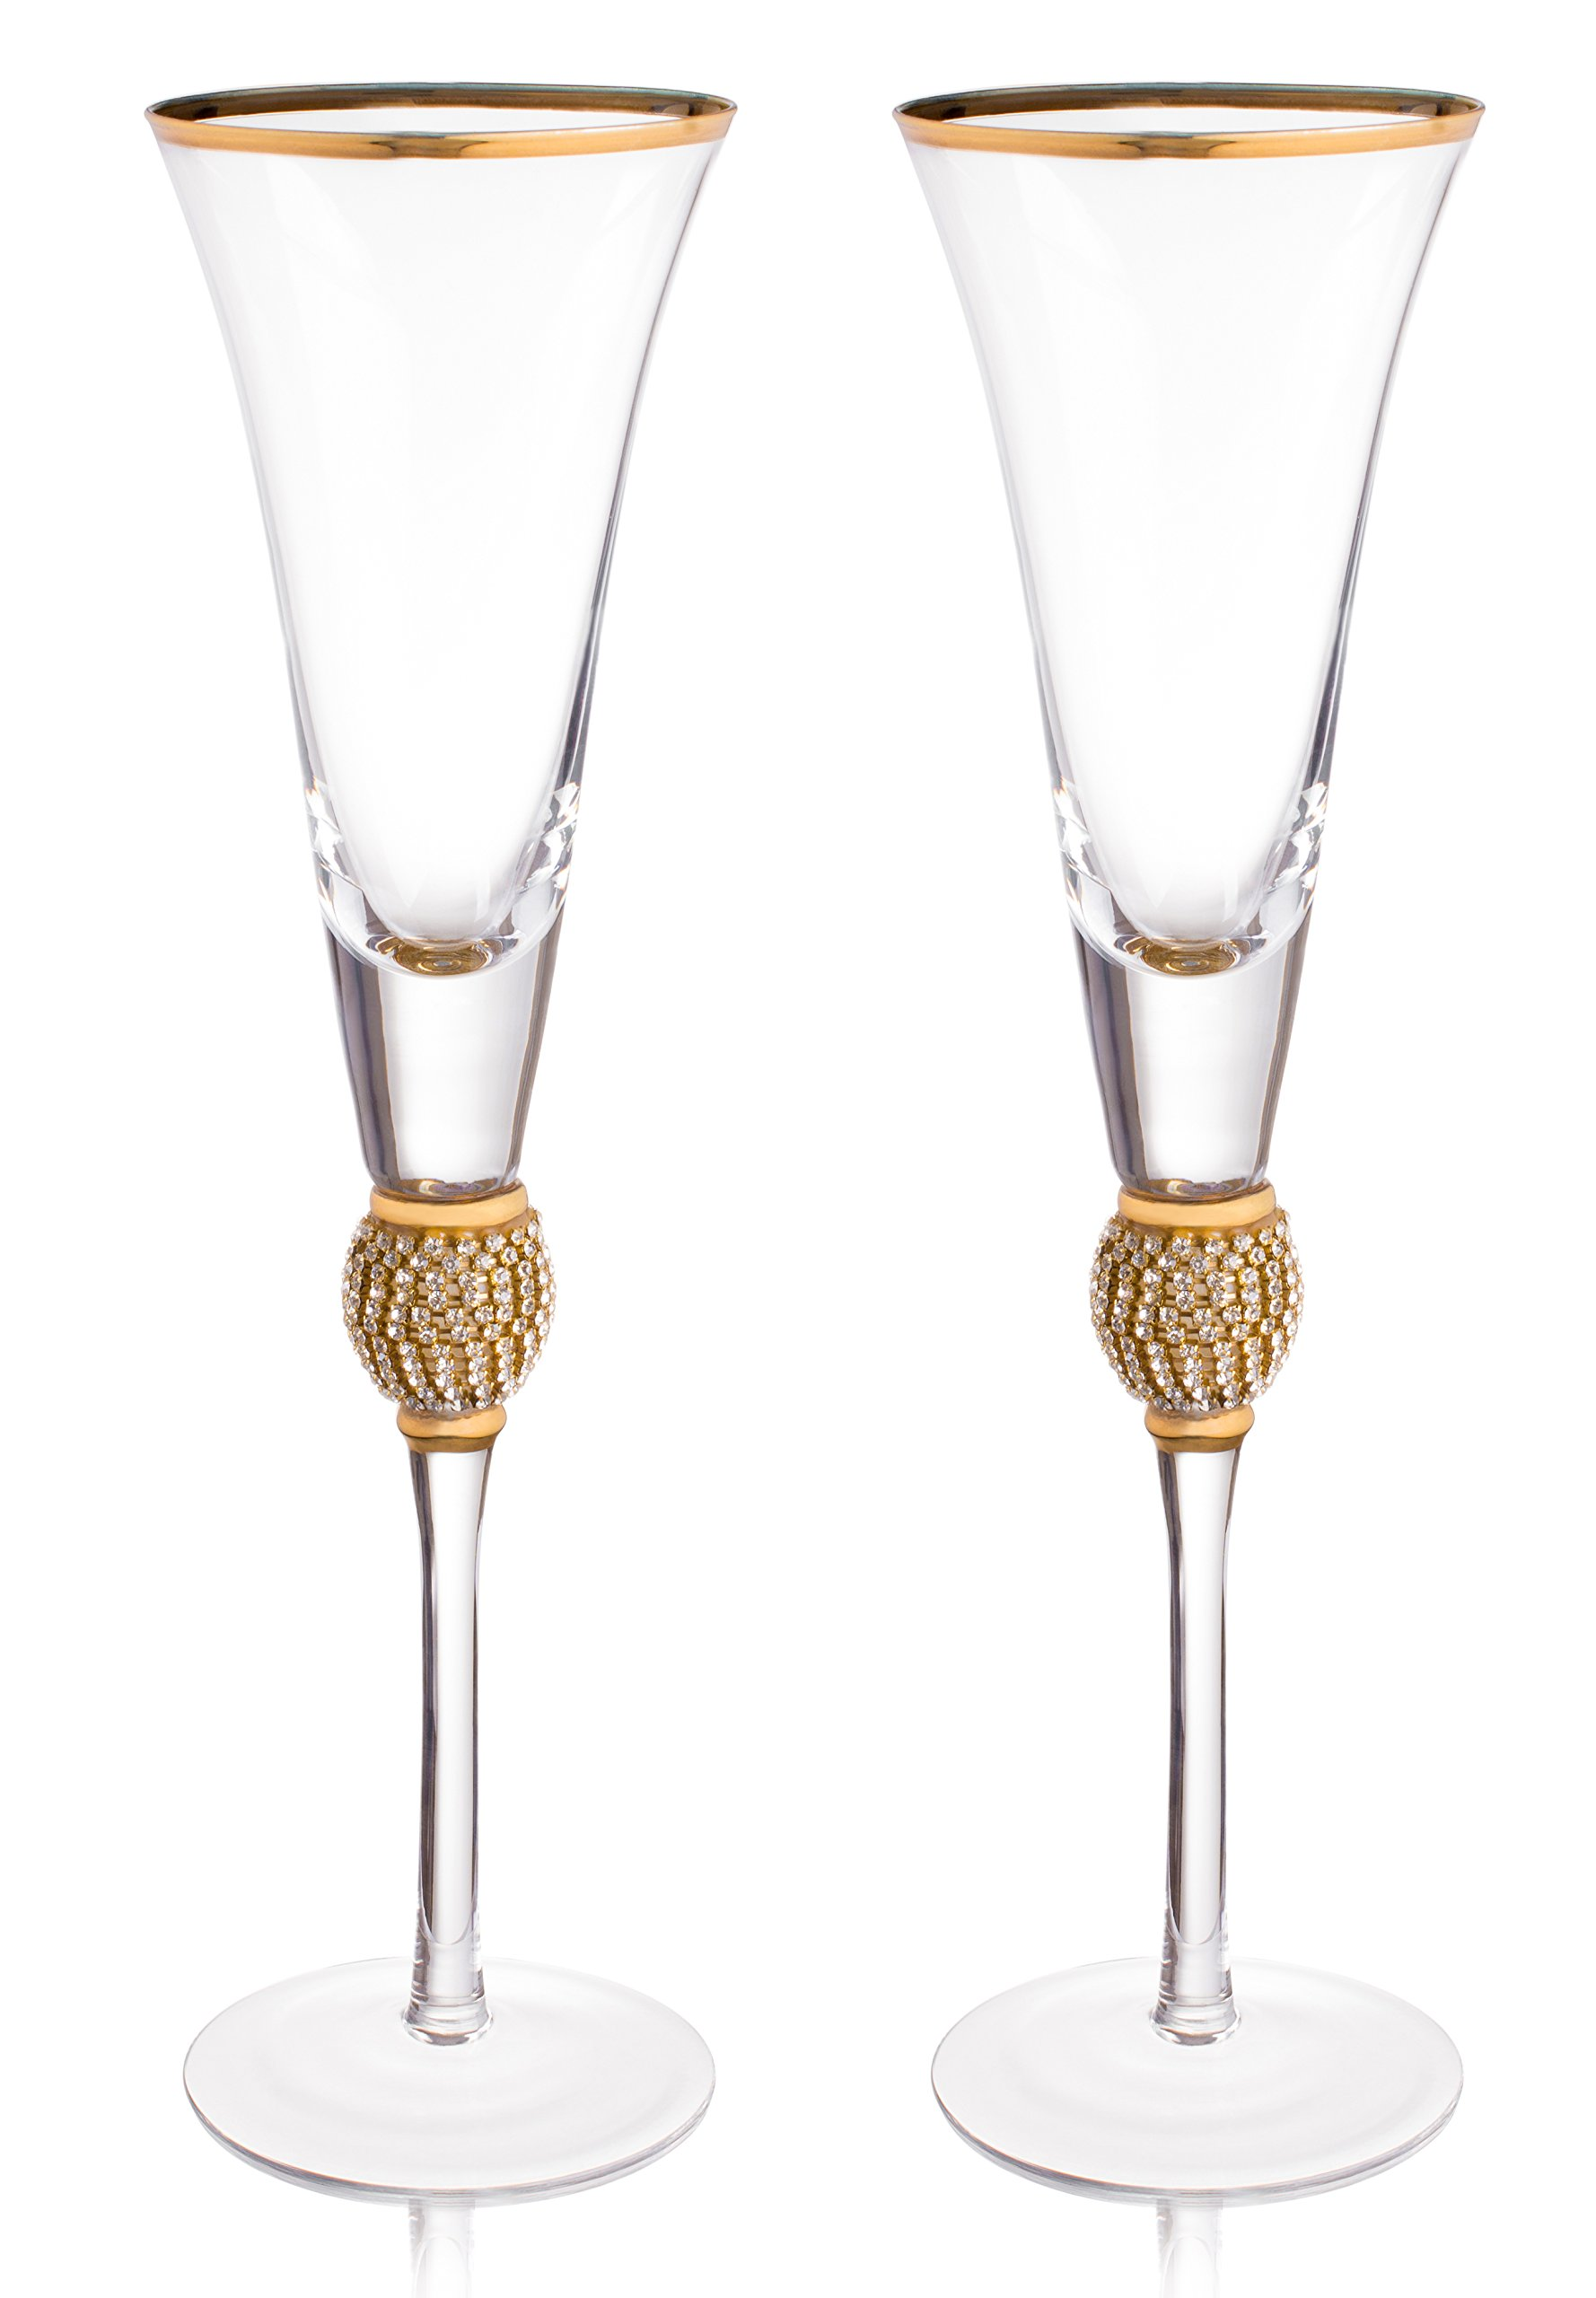 Trinkware Wedding Champagne Flutes - Rhinestone''DIAMOND'' Studded Toasting Glasses With Gold Rim - Long Stem, 7oz, 11-inches Tall - Elegant Glassware And Stemware - Set of 2 For Bride And Groom by Trinkware